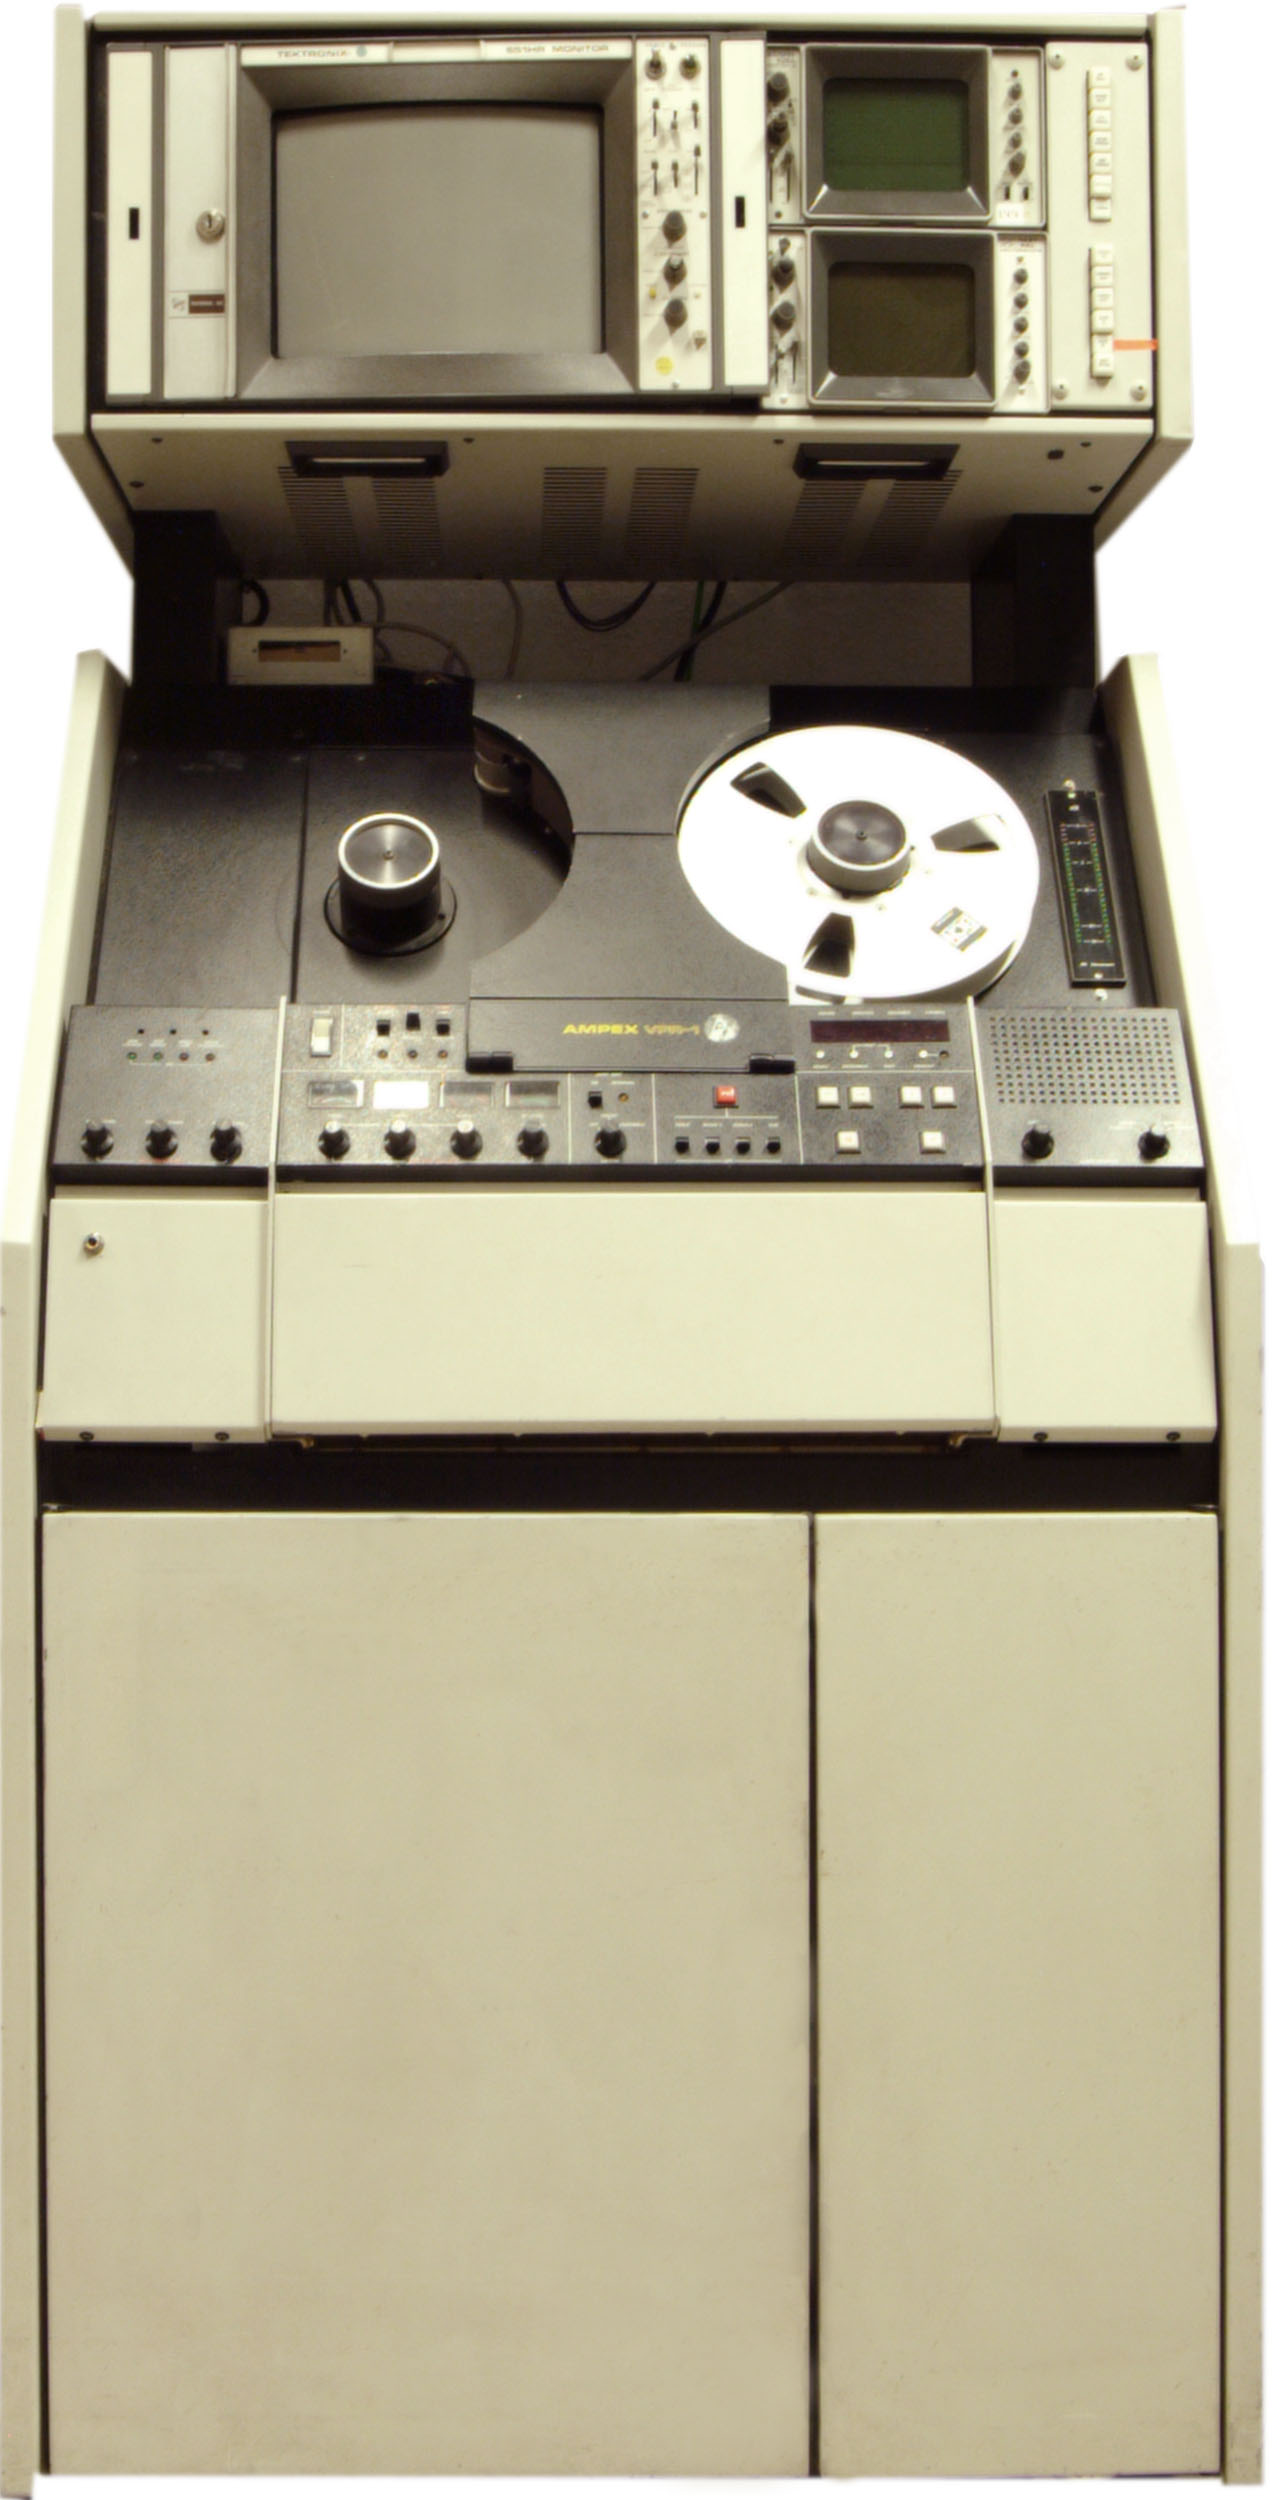 FileAMPEX 1 ZOLL A VPR